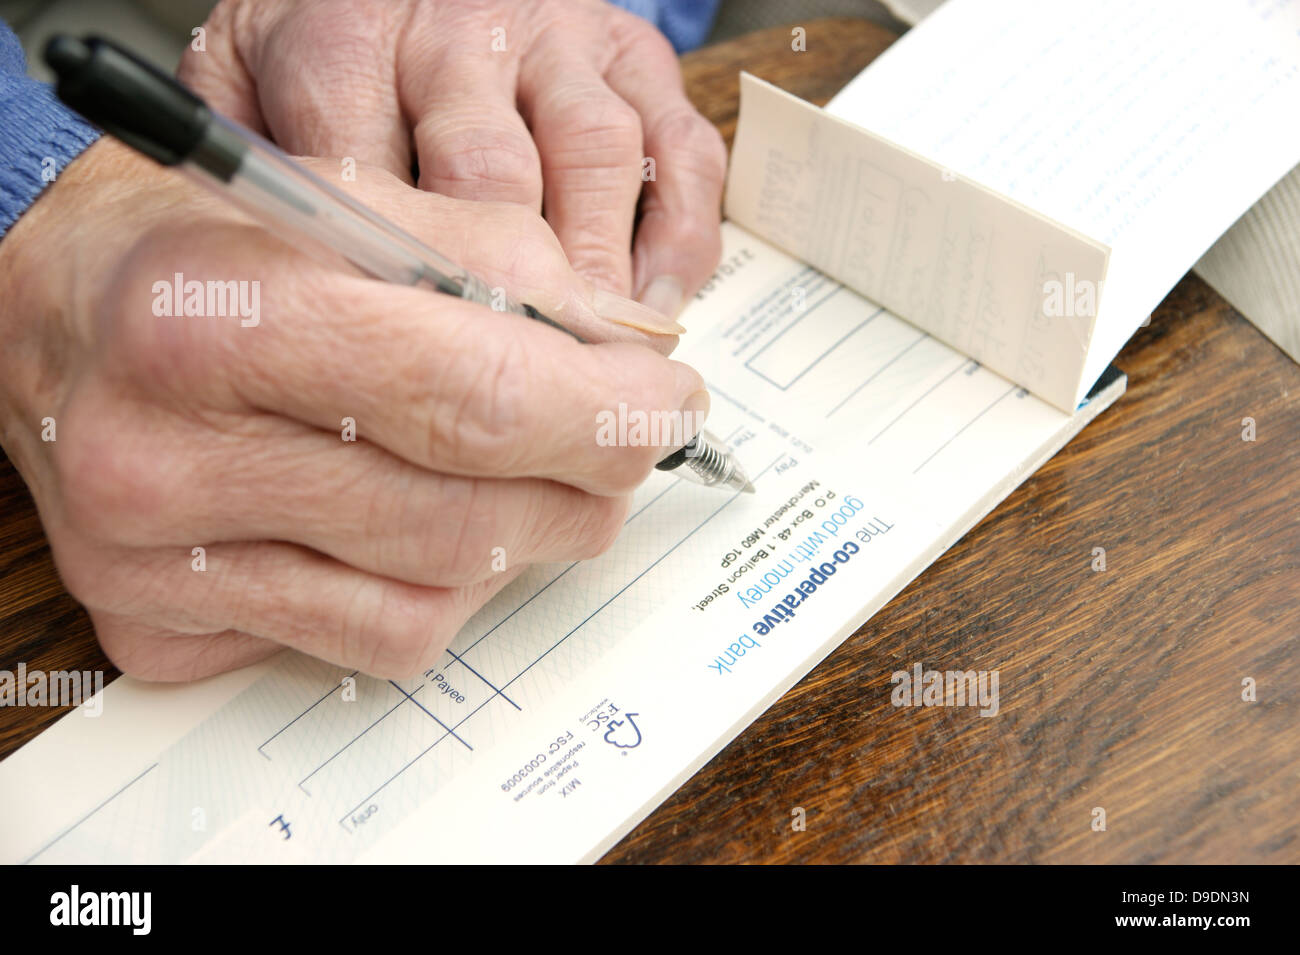 Elderly woman writing a cheque which is getting rarer these days (Co-operative bank cheque book) Co operative bank - Stock Image